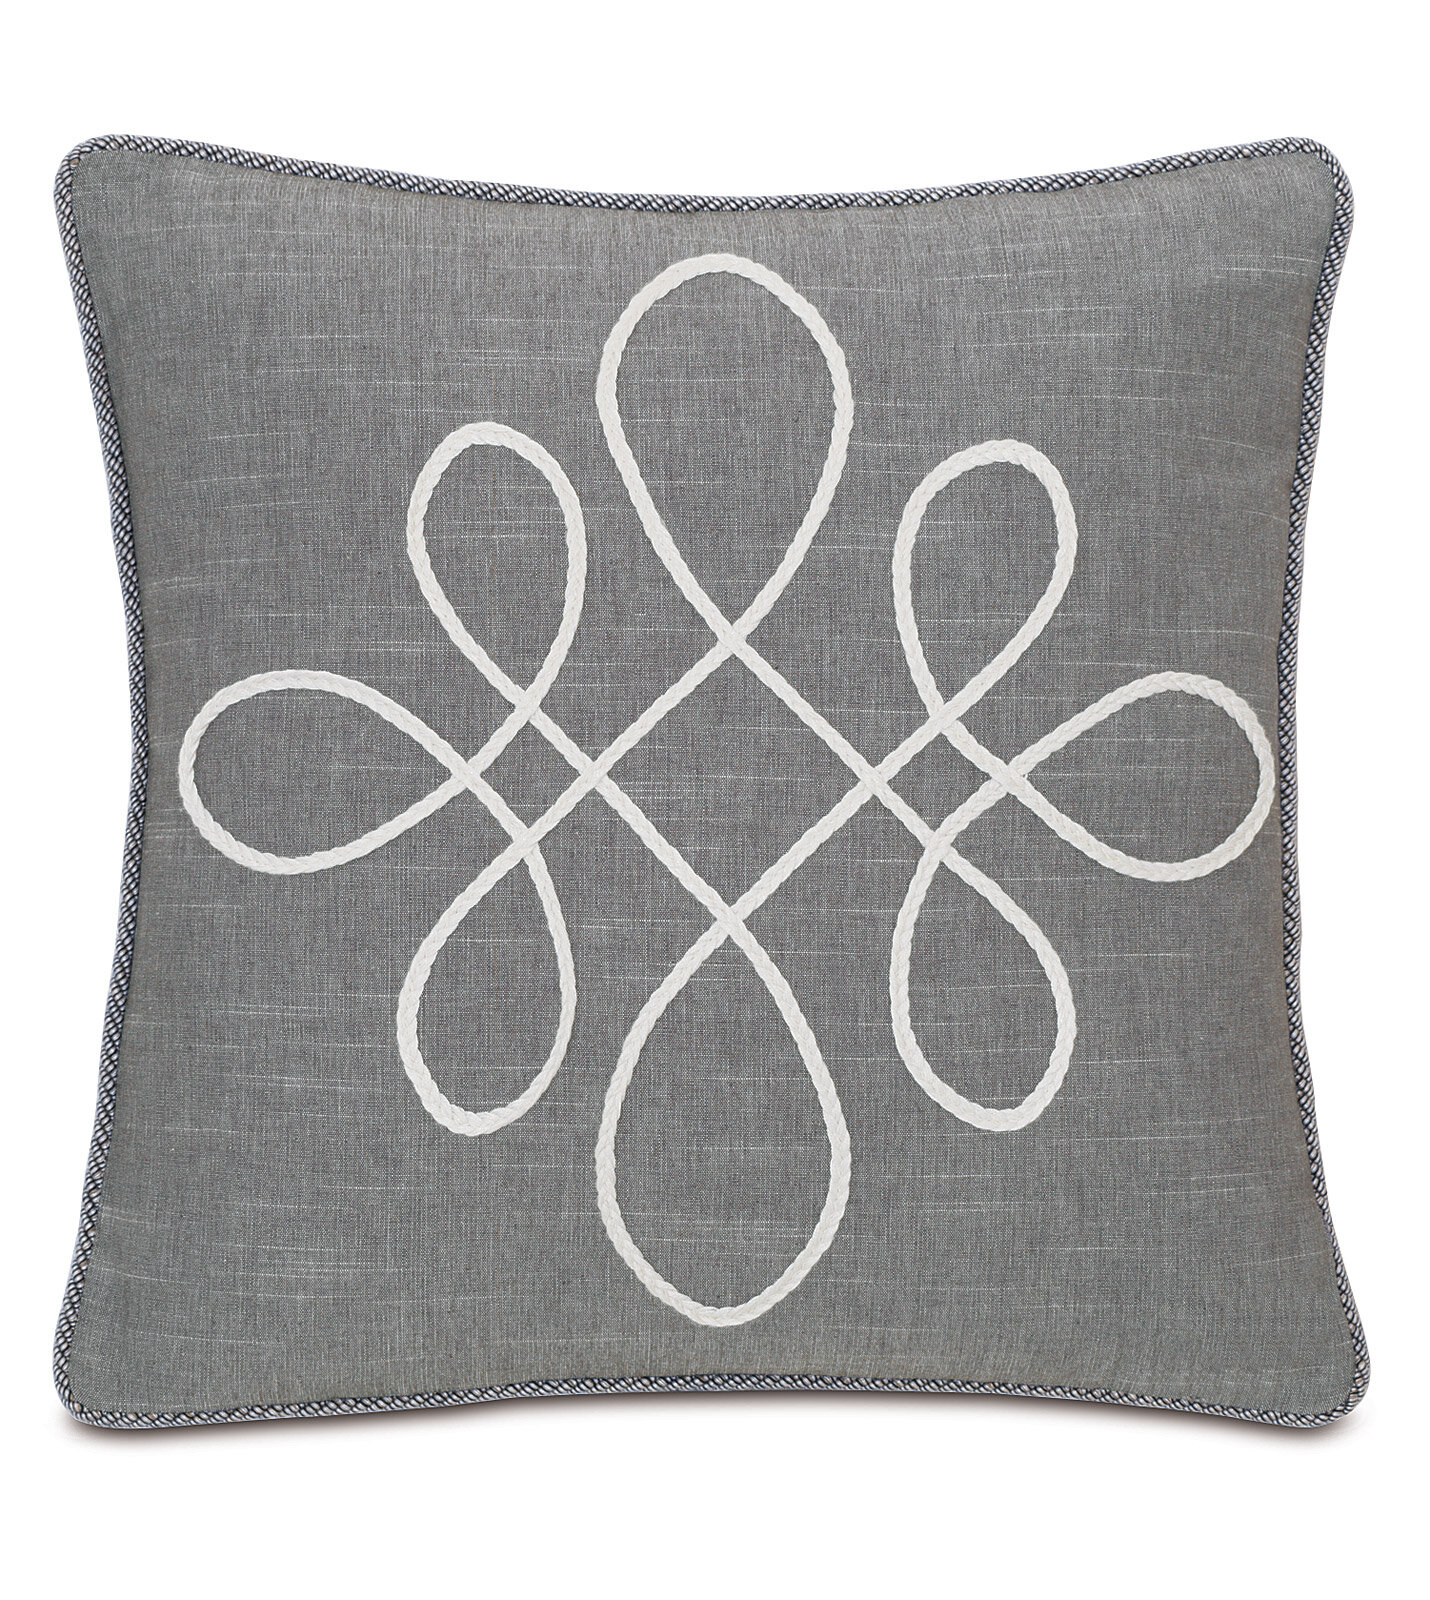 Eastern Accents Hampshire Duvall Throw Pillow Perigold